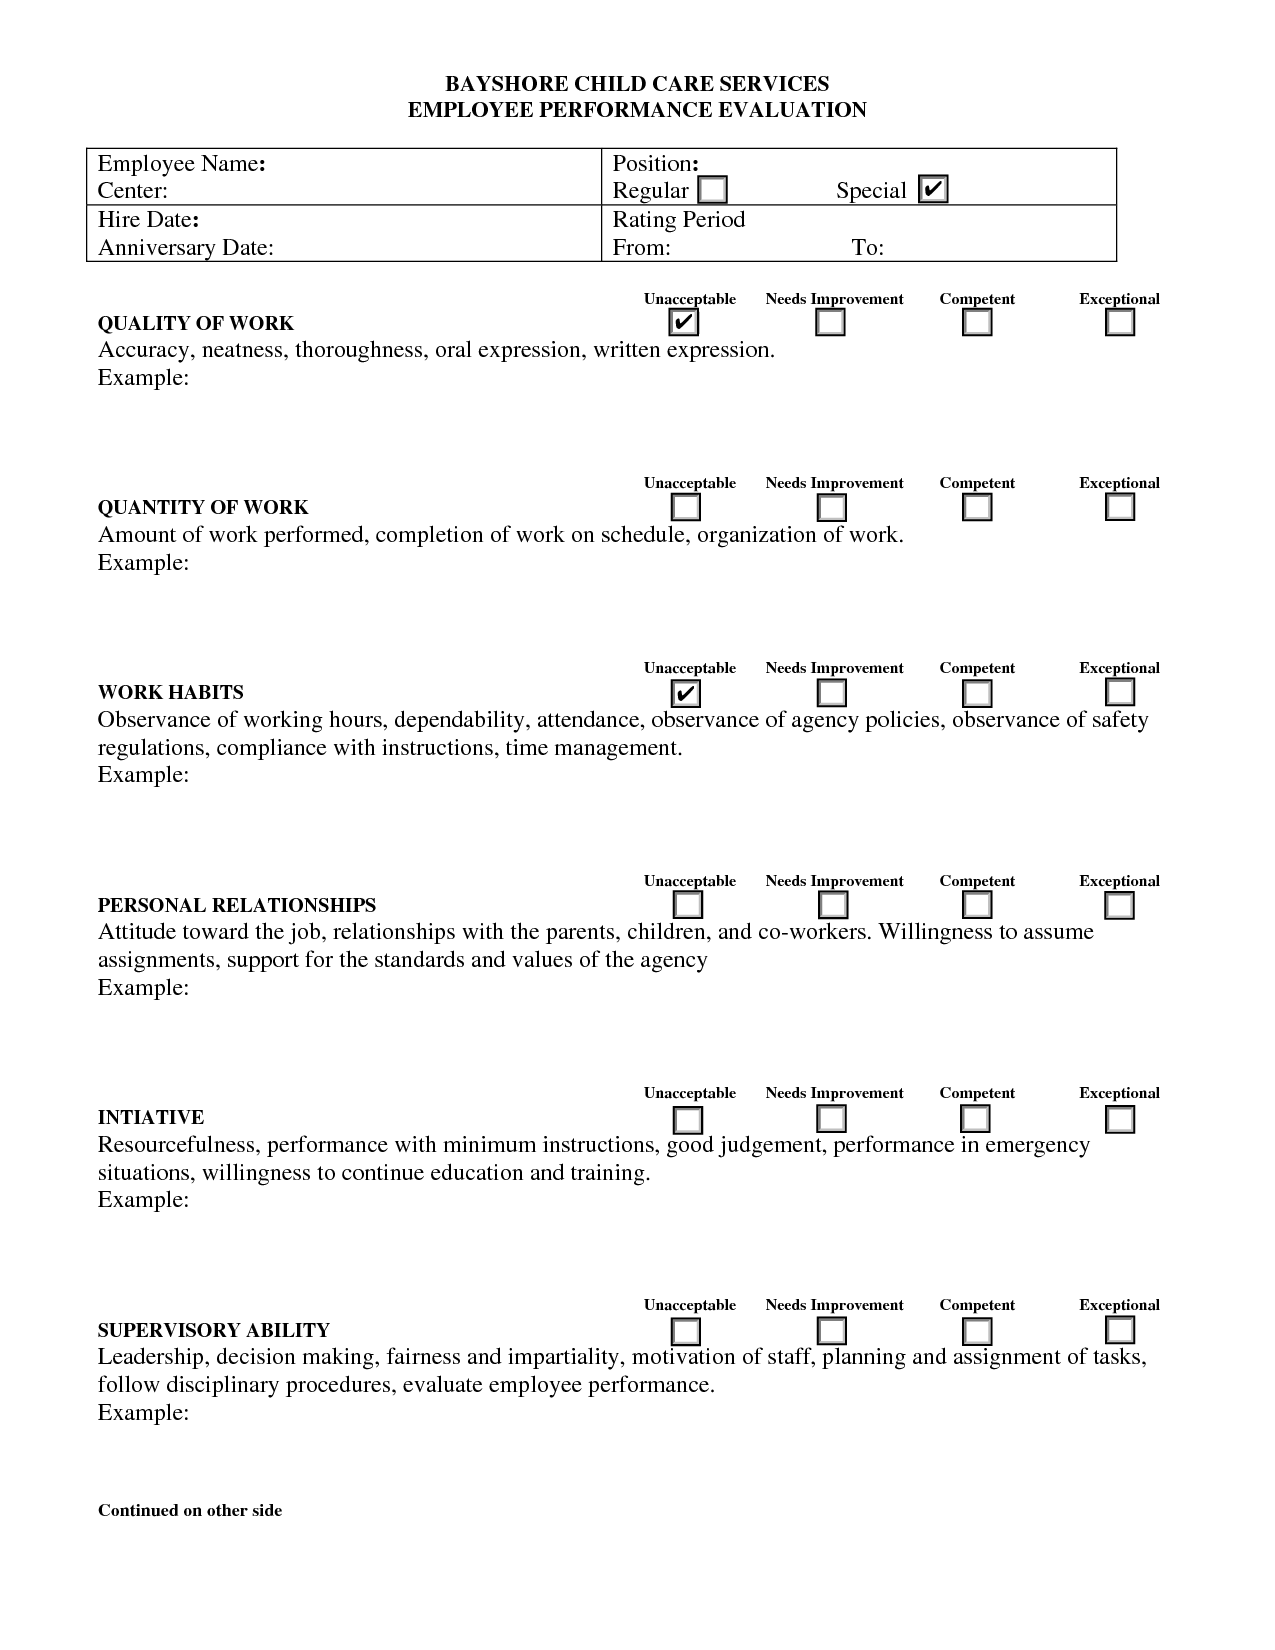 Evaluation Form For Child Care  Google Search  Good  Know